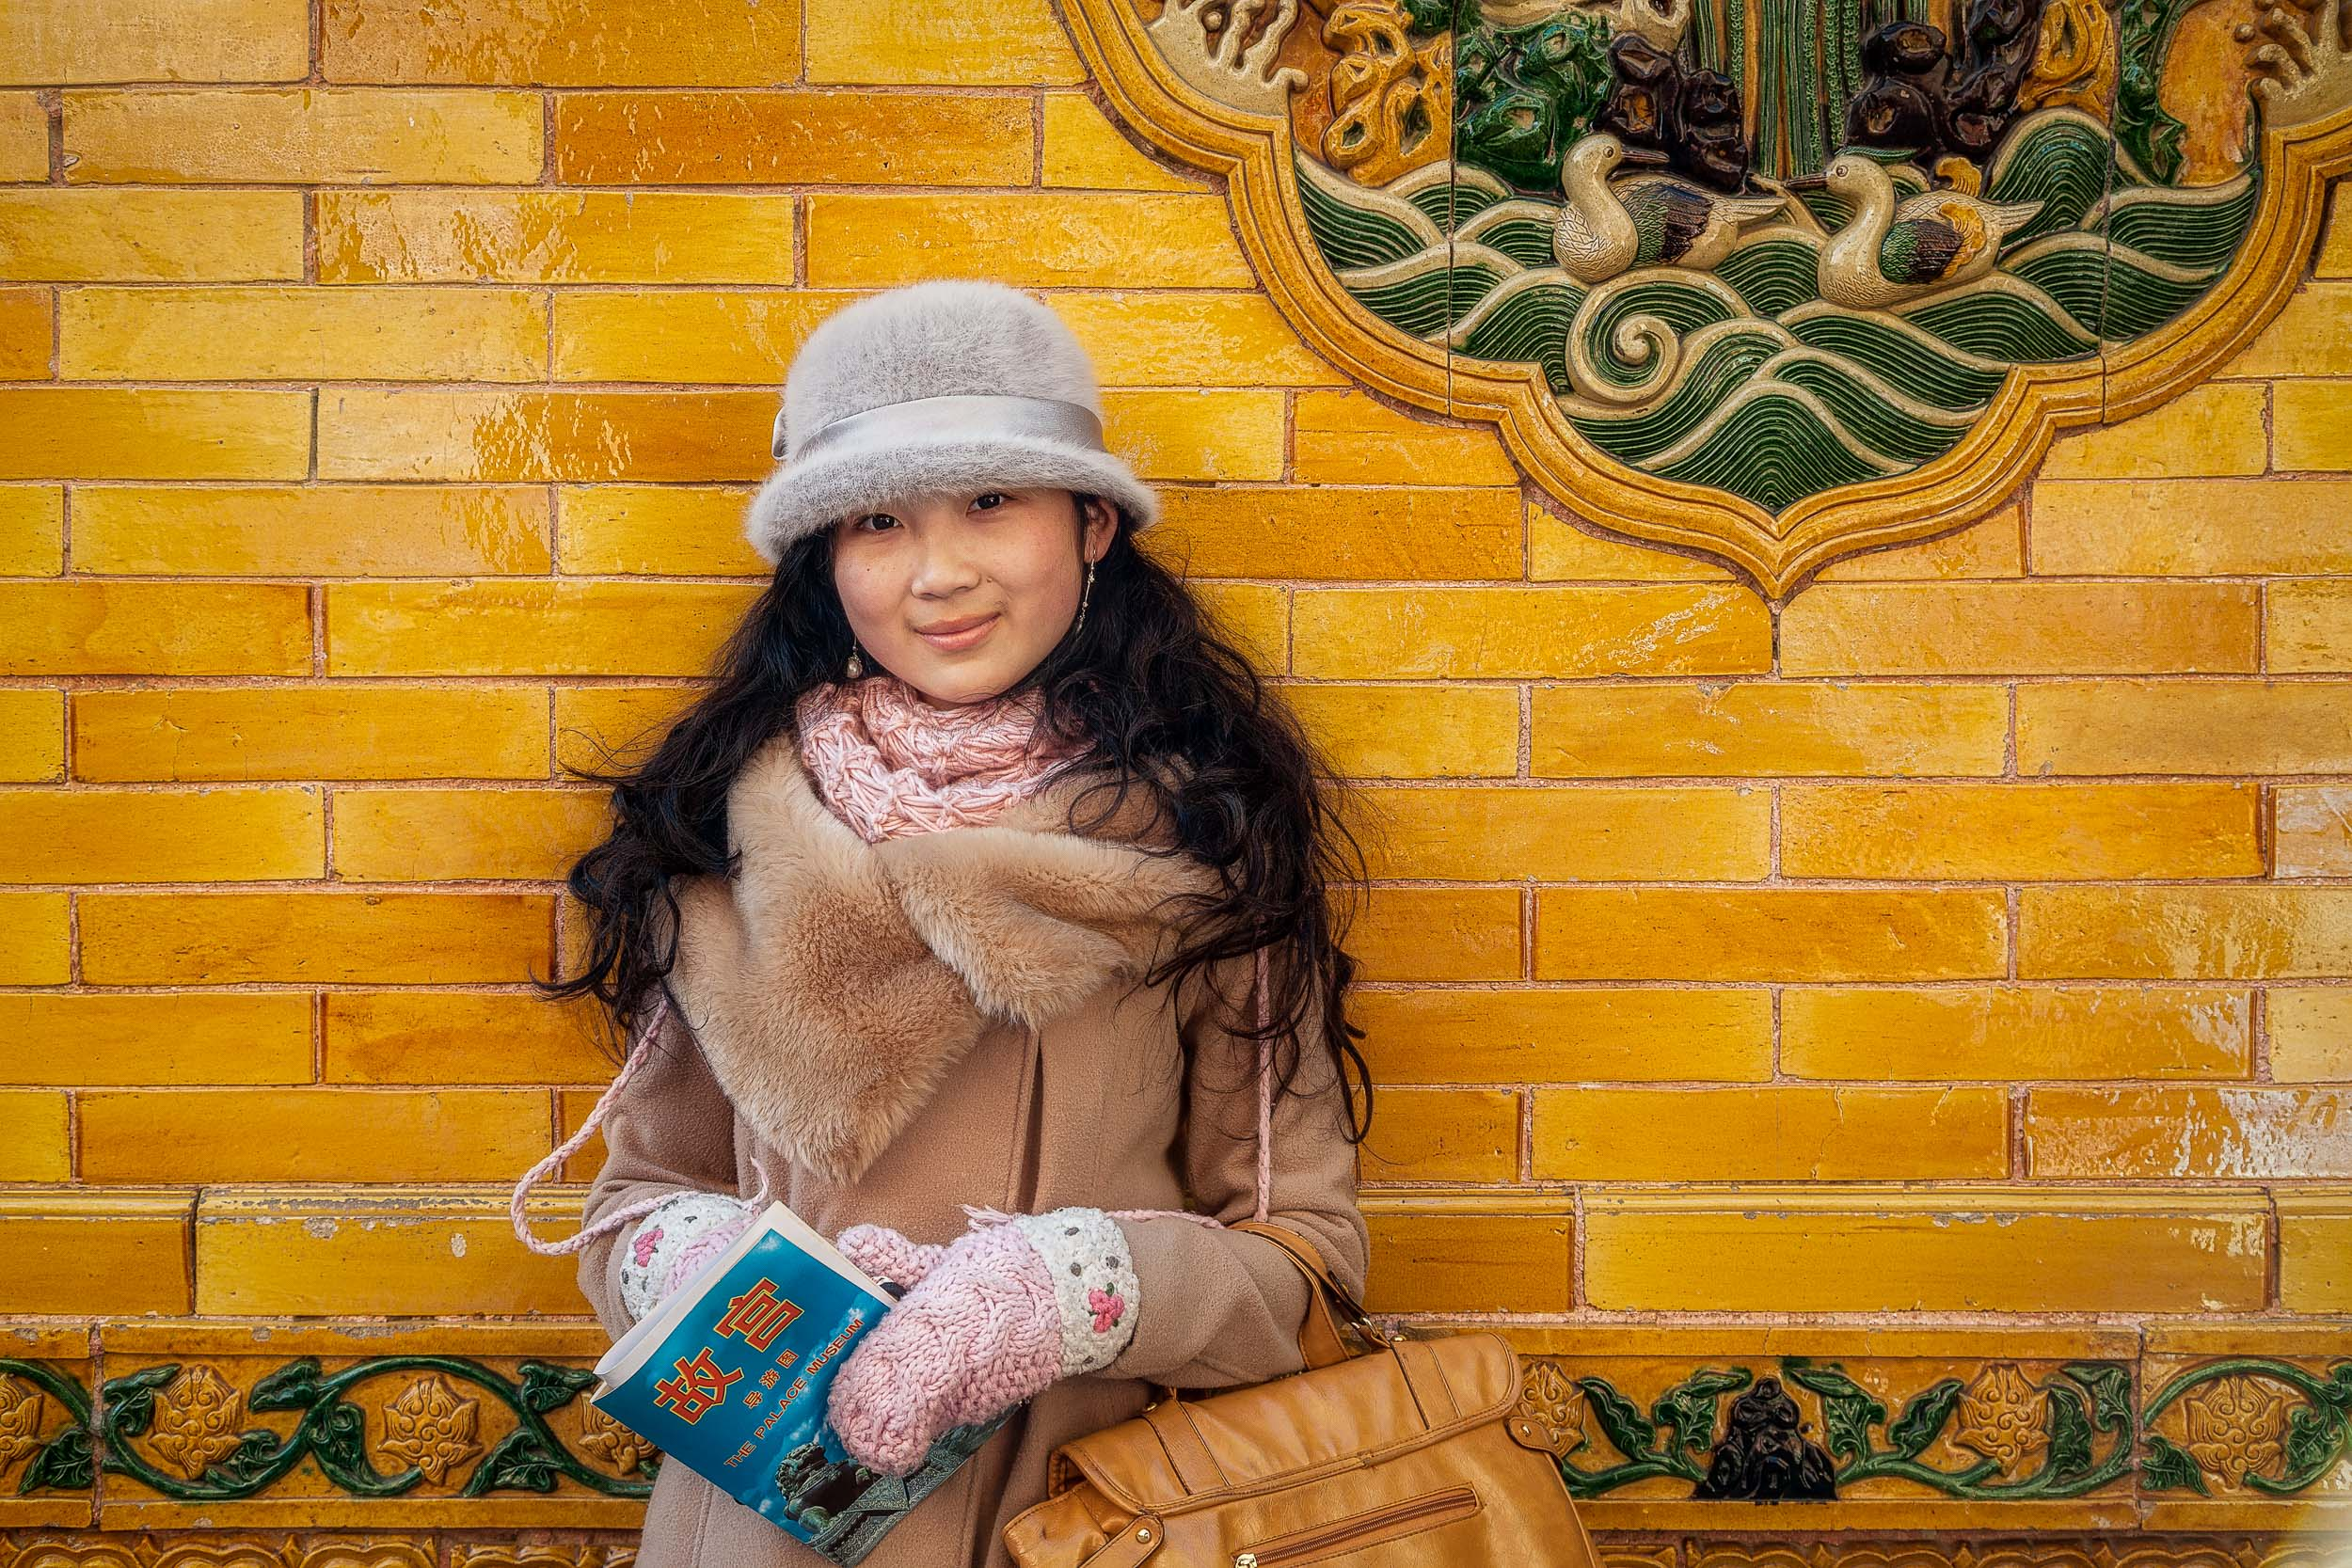 A  portrait  of a  beautiful young woman  in the  Forbidden City  in  Beijing, China .